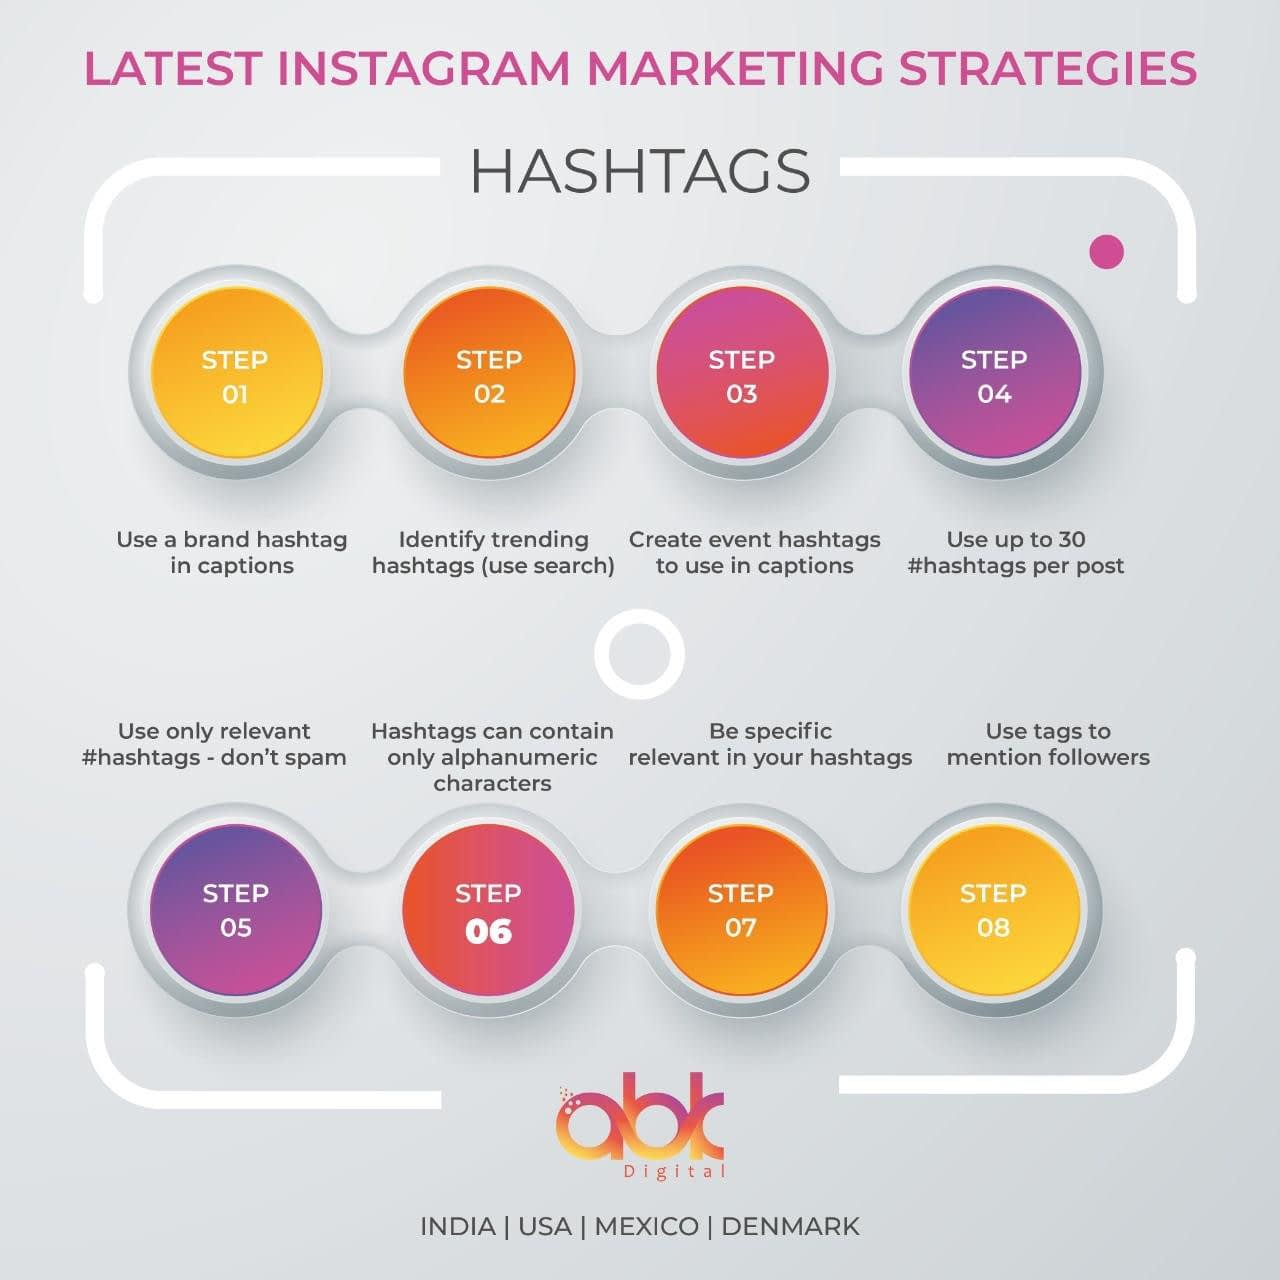 Here we give you 6 Instagram hashtags strategies that will help your brand grow.